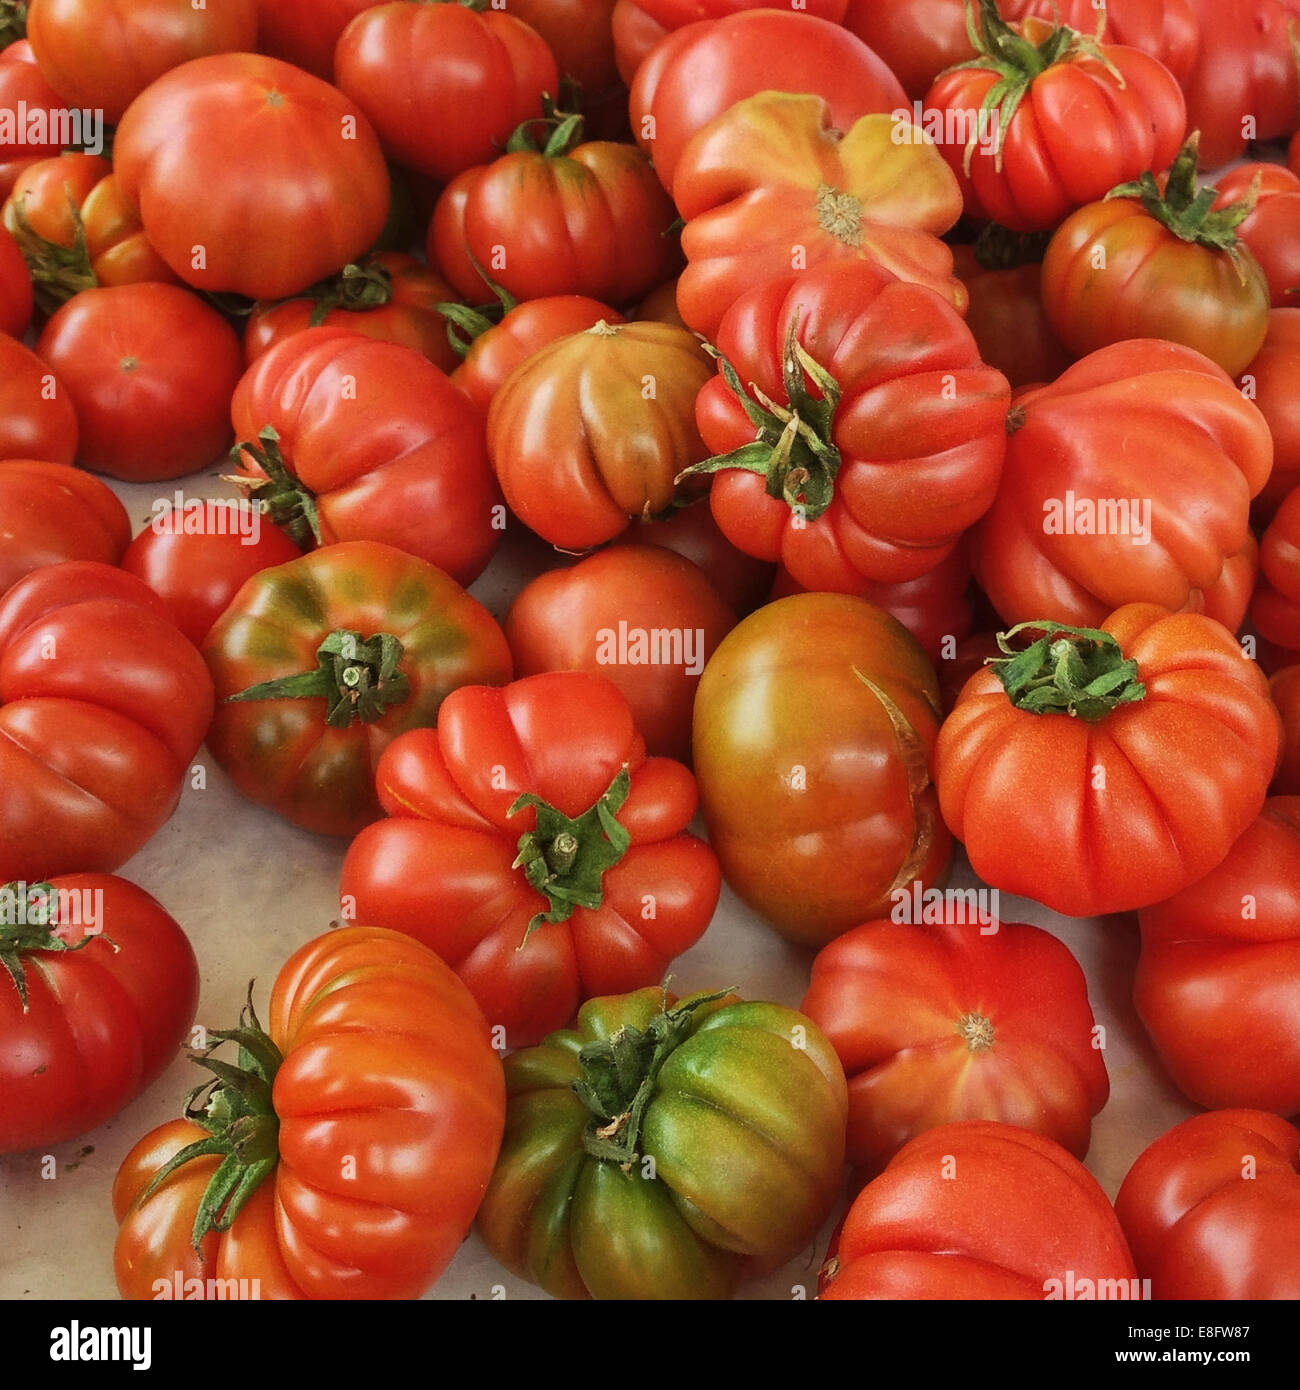 Italy, Tuscany, Tomatoes on market - Stock Image